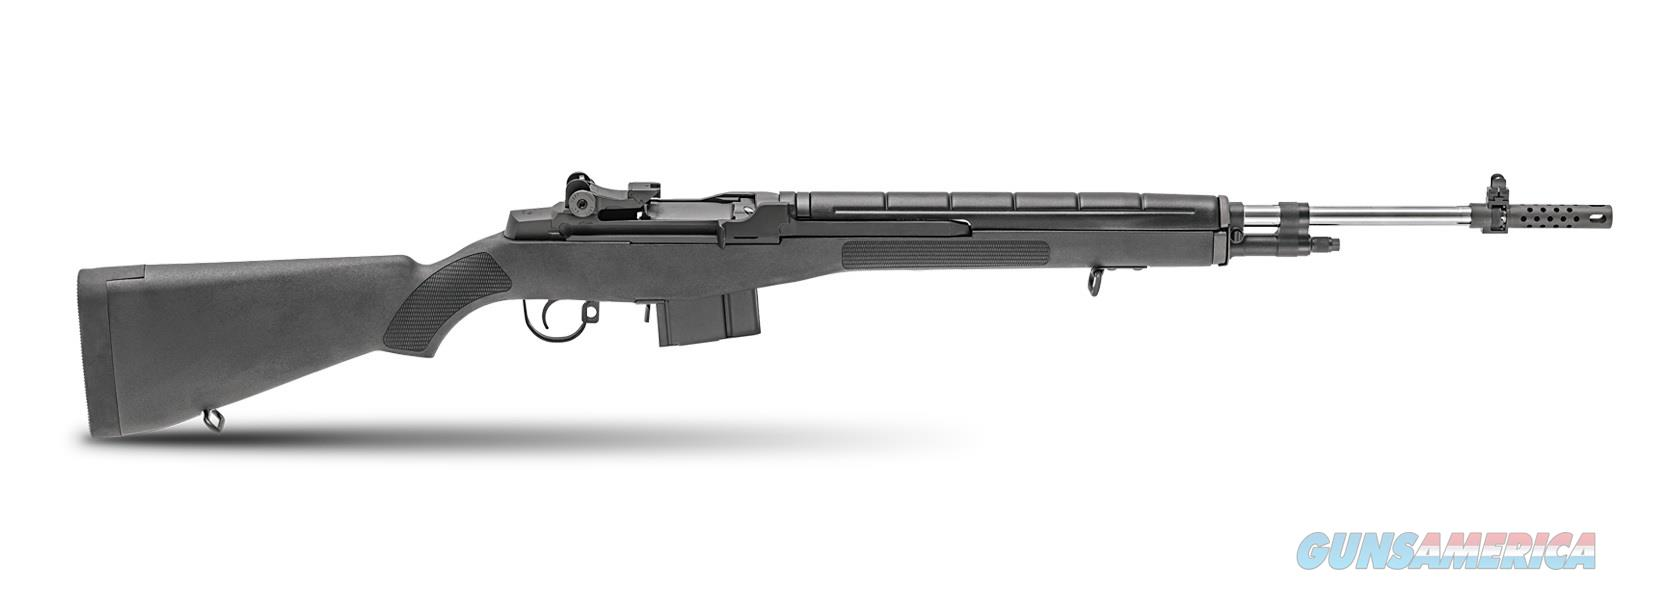 "Springfield M1A National Match 6.5 Creedmoor 22"" CA Approved MA9826C65CA  Guns > Rifles > Springfield Armory Rifles > M1A/M14"